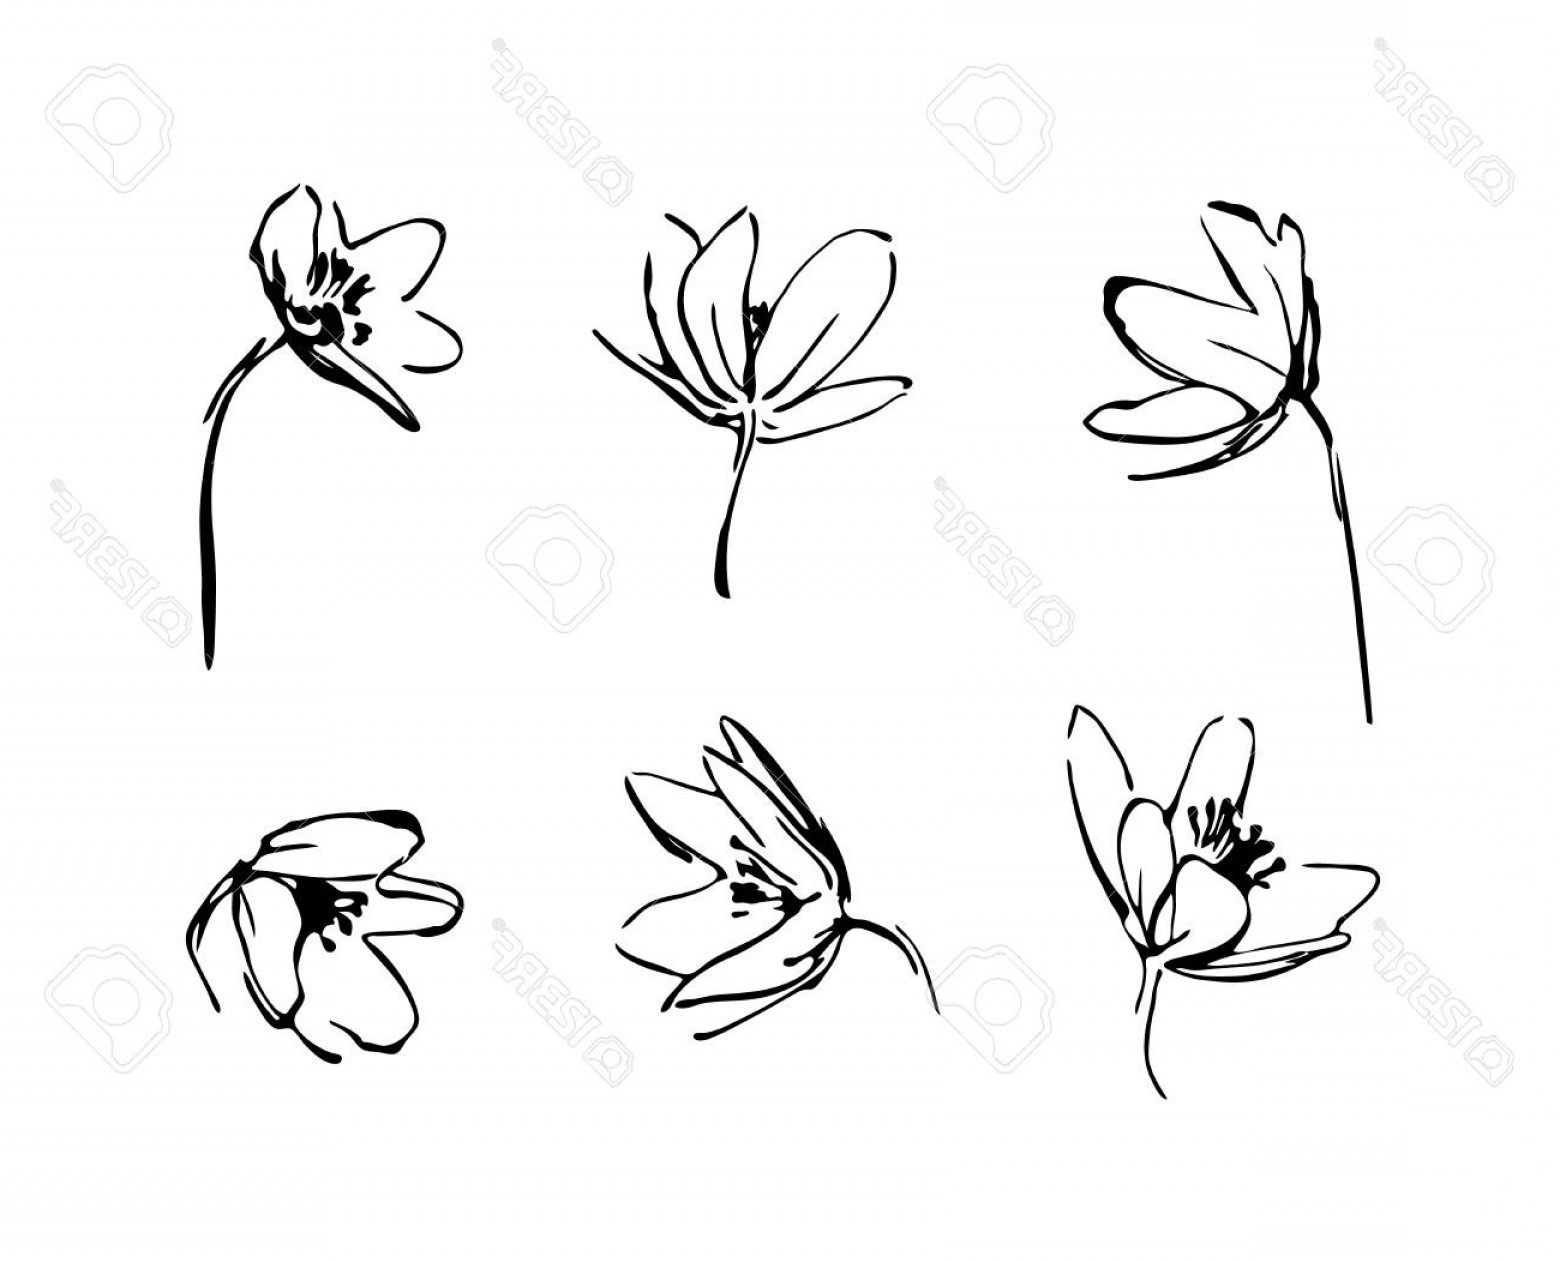 Wildflowers Outline Vector: Photostock Vector Set Of Hand Drawn Wildflowers Outline Flower Plant Silhouette Brush Ink Painting Black Isolated Vect